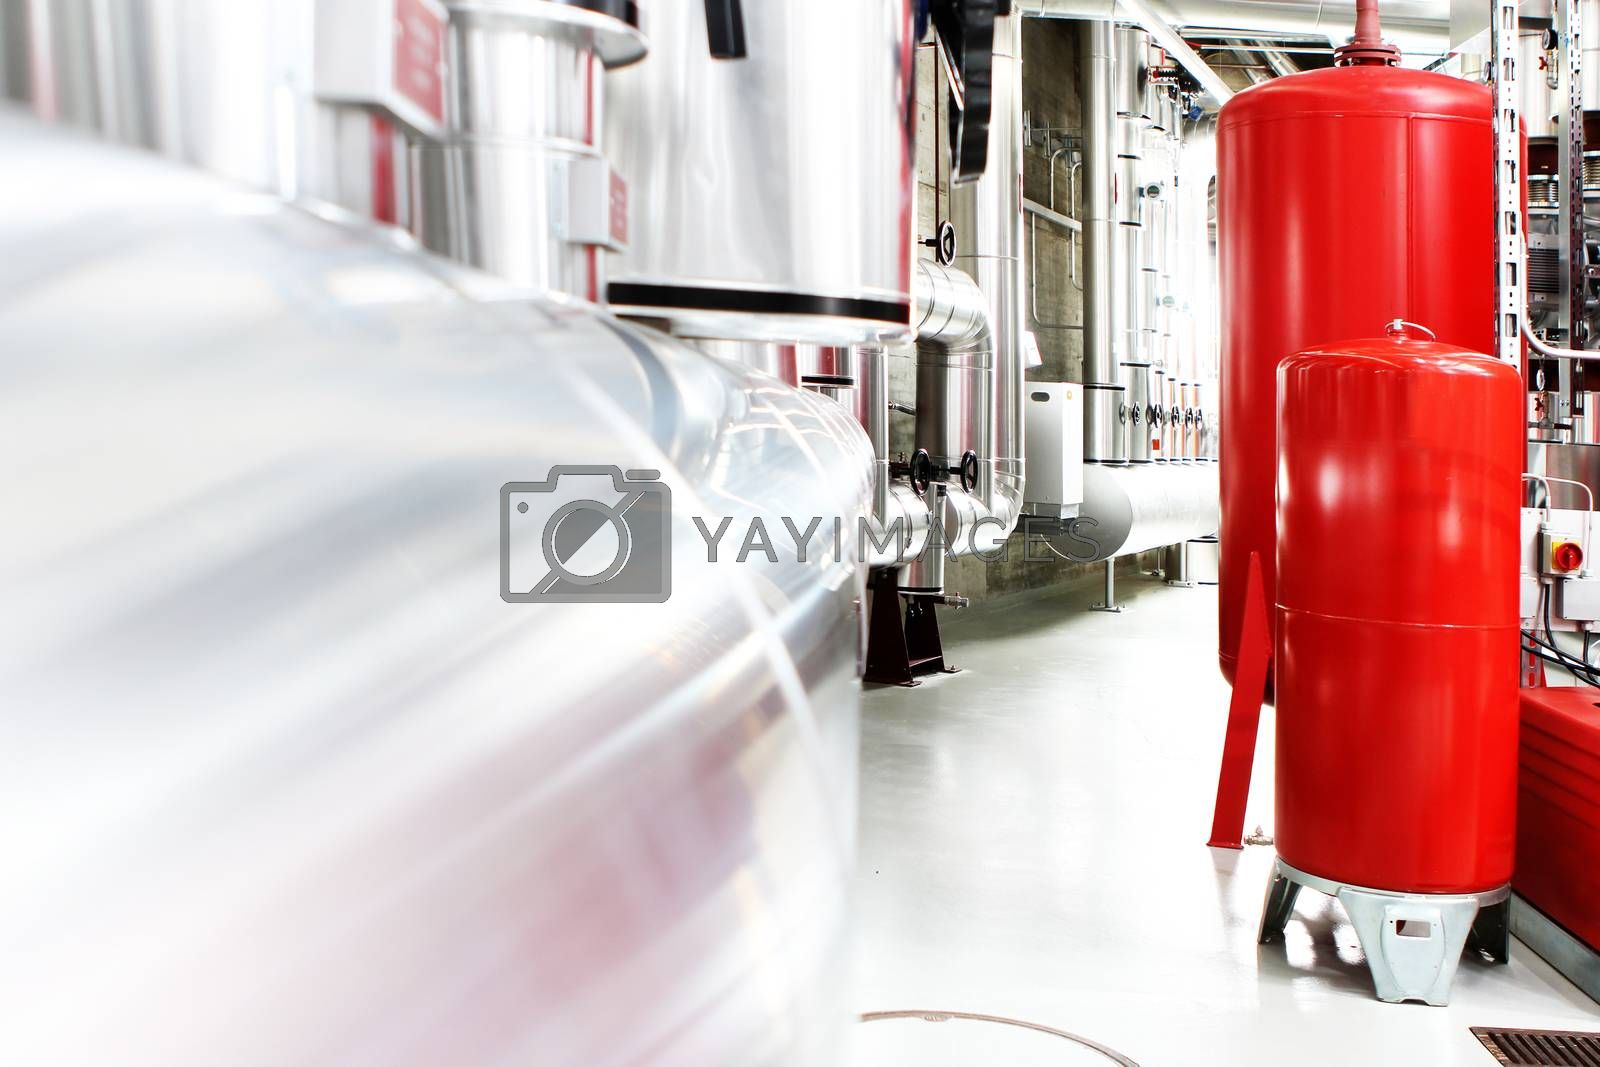 chrome pipes in heating and AC rooms in buildings of factories and hospital. Several pipes with silver and red pipes